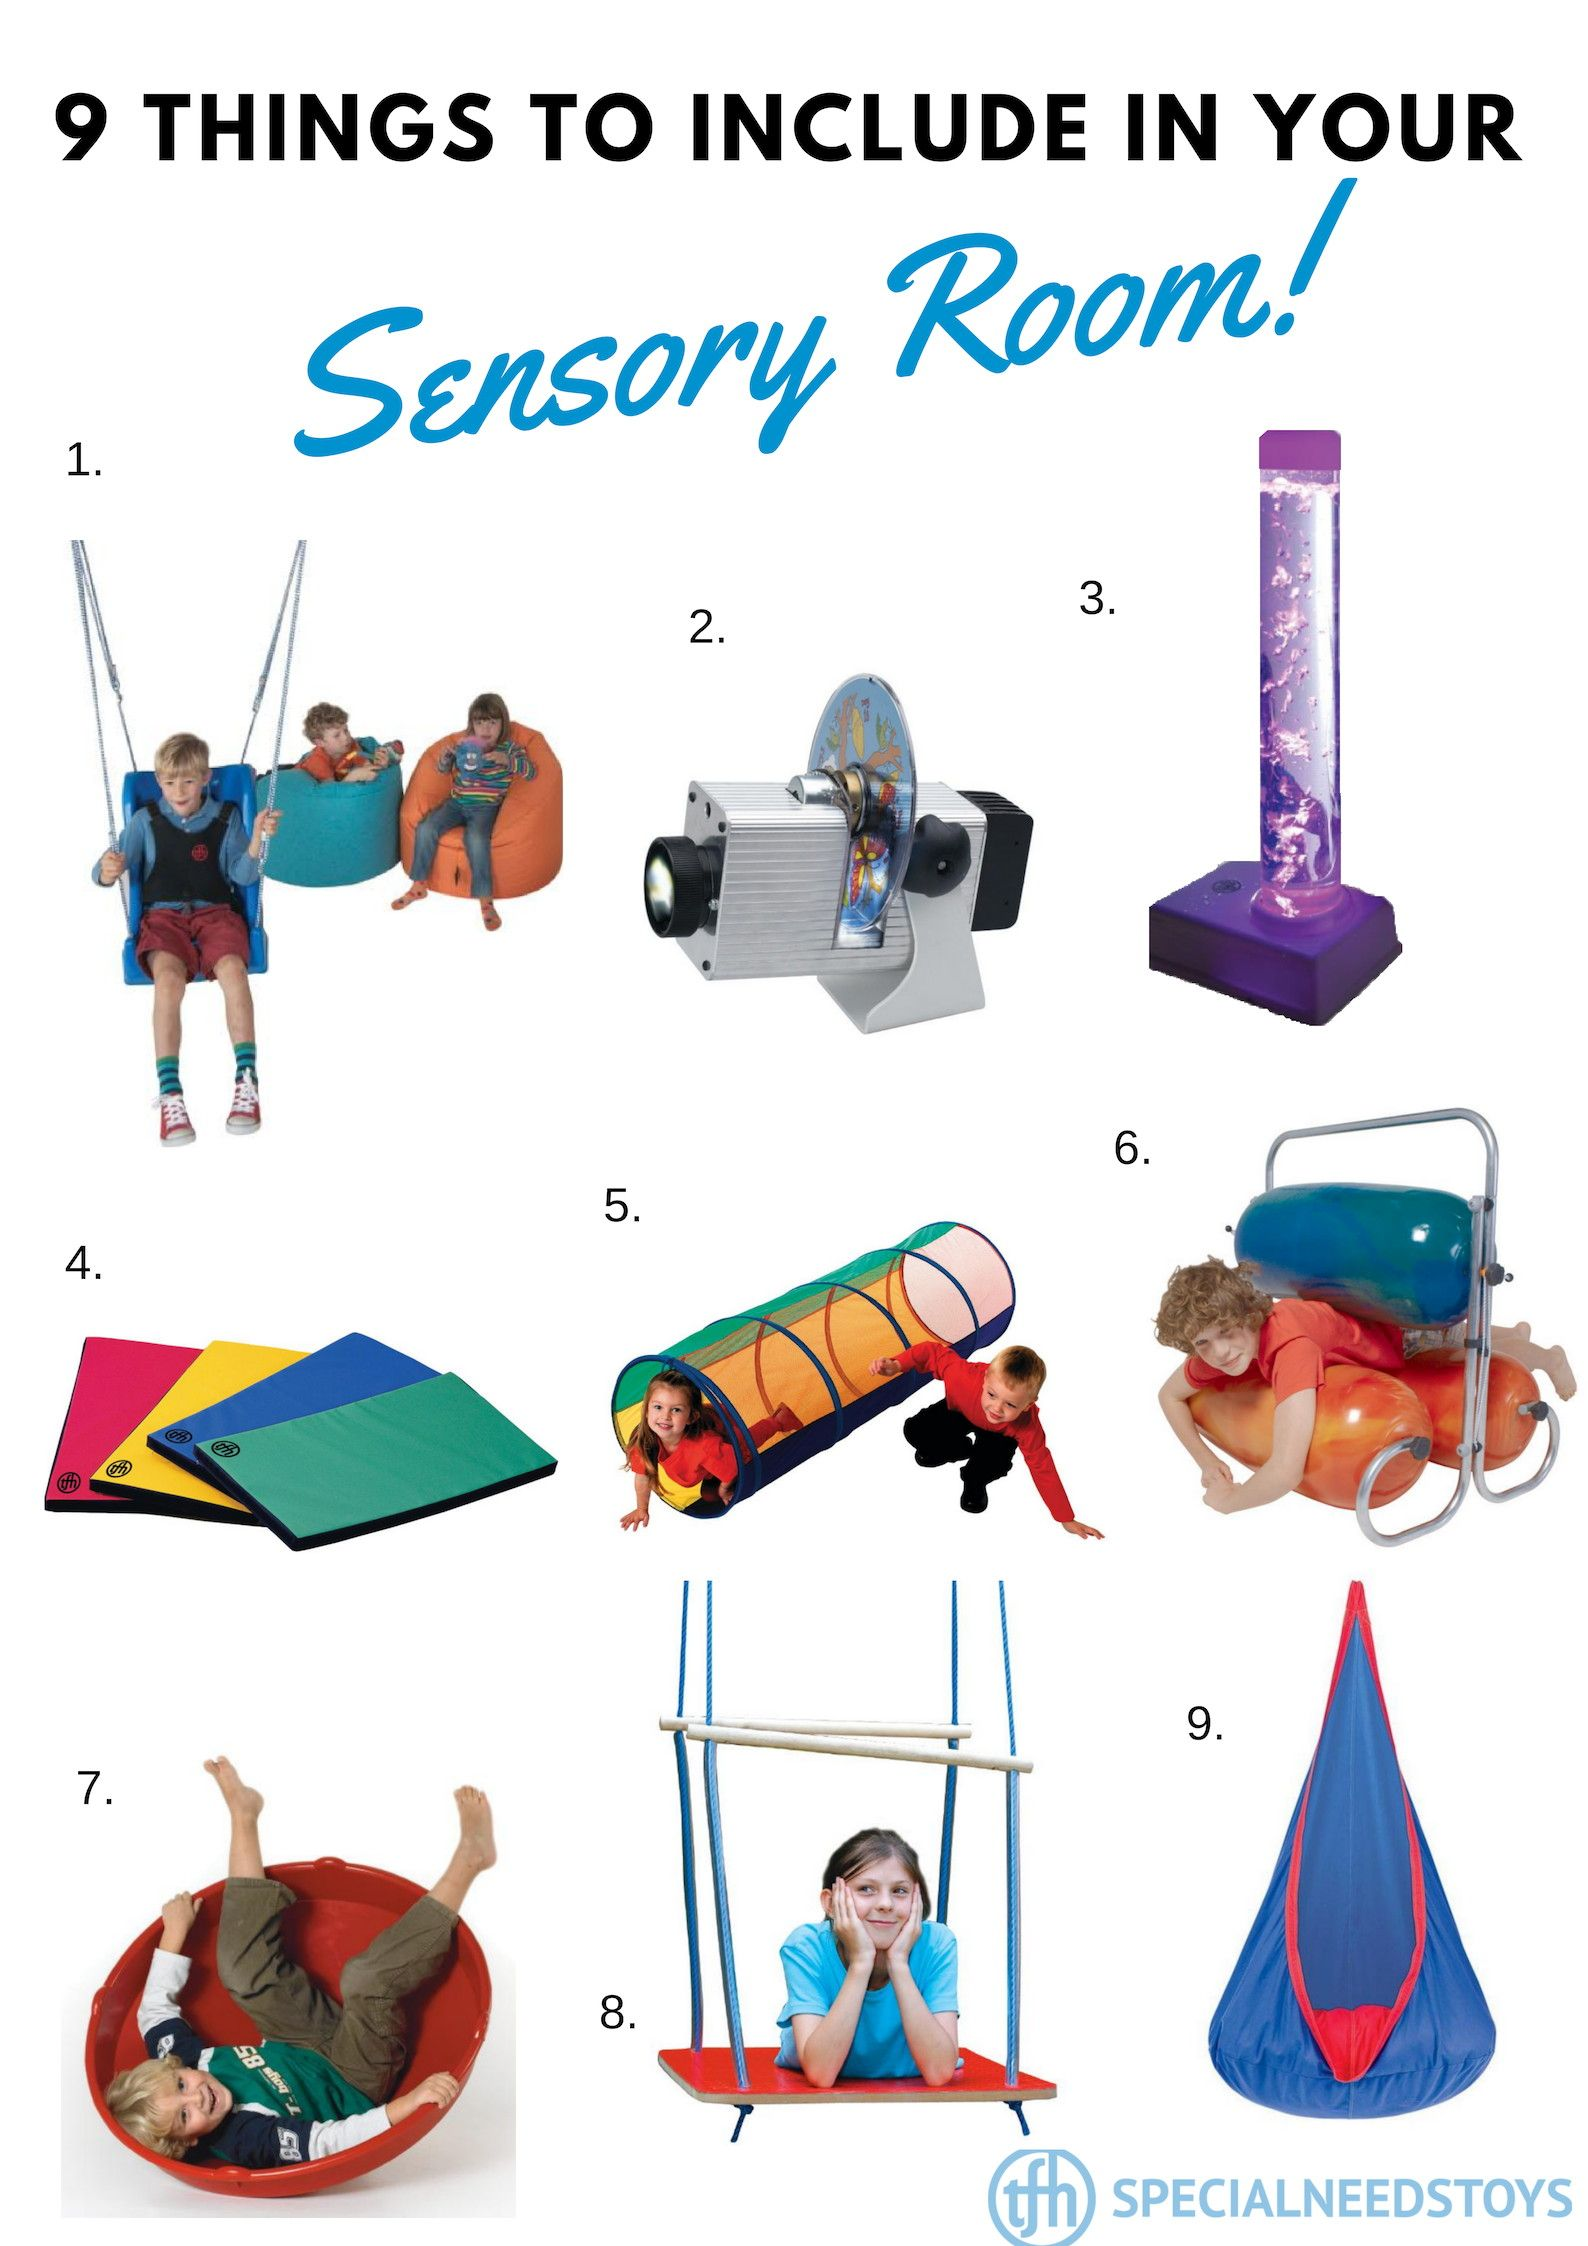 Sensory Integration Room Design: The First Step In Creating A Sensory Space Is To Consider